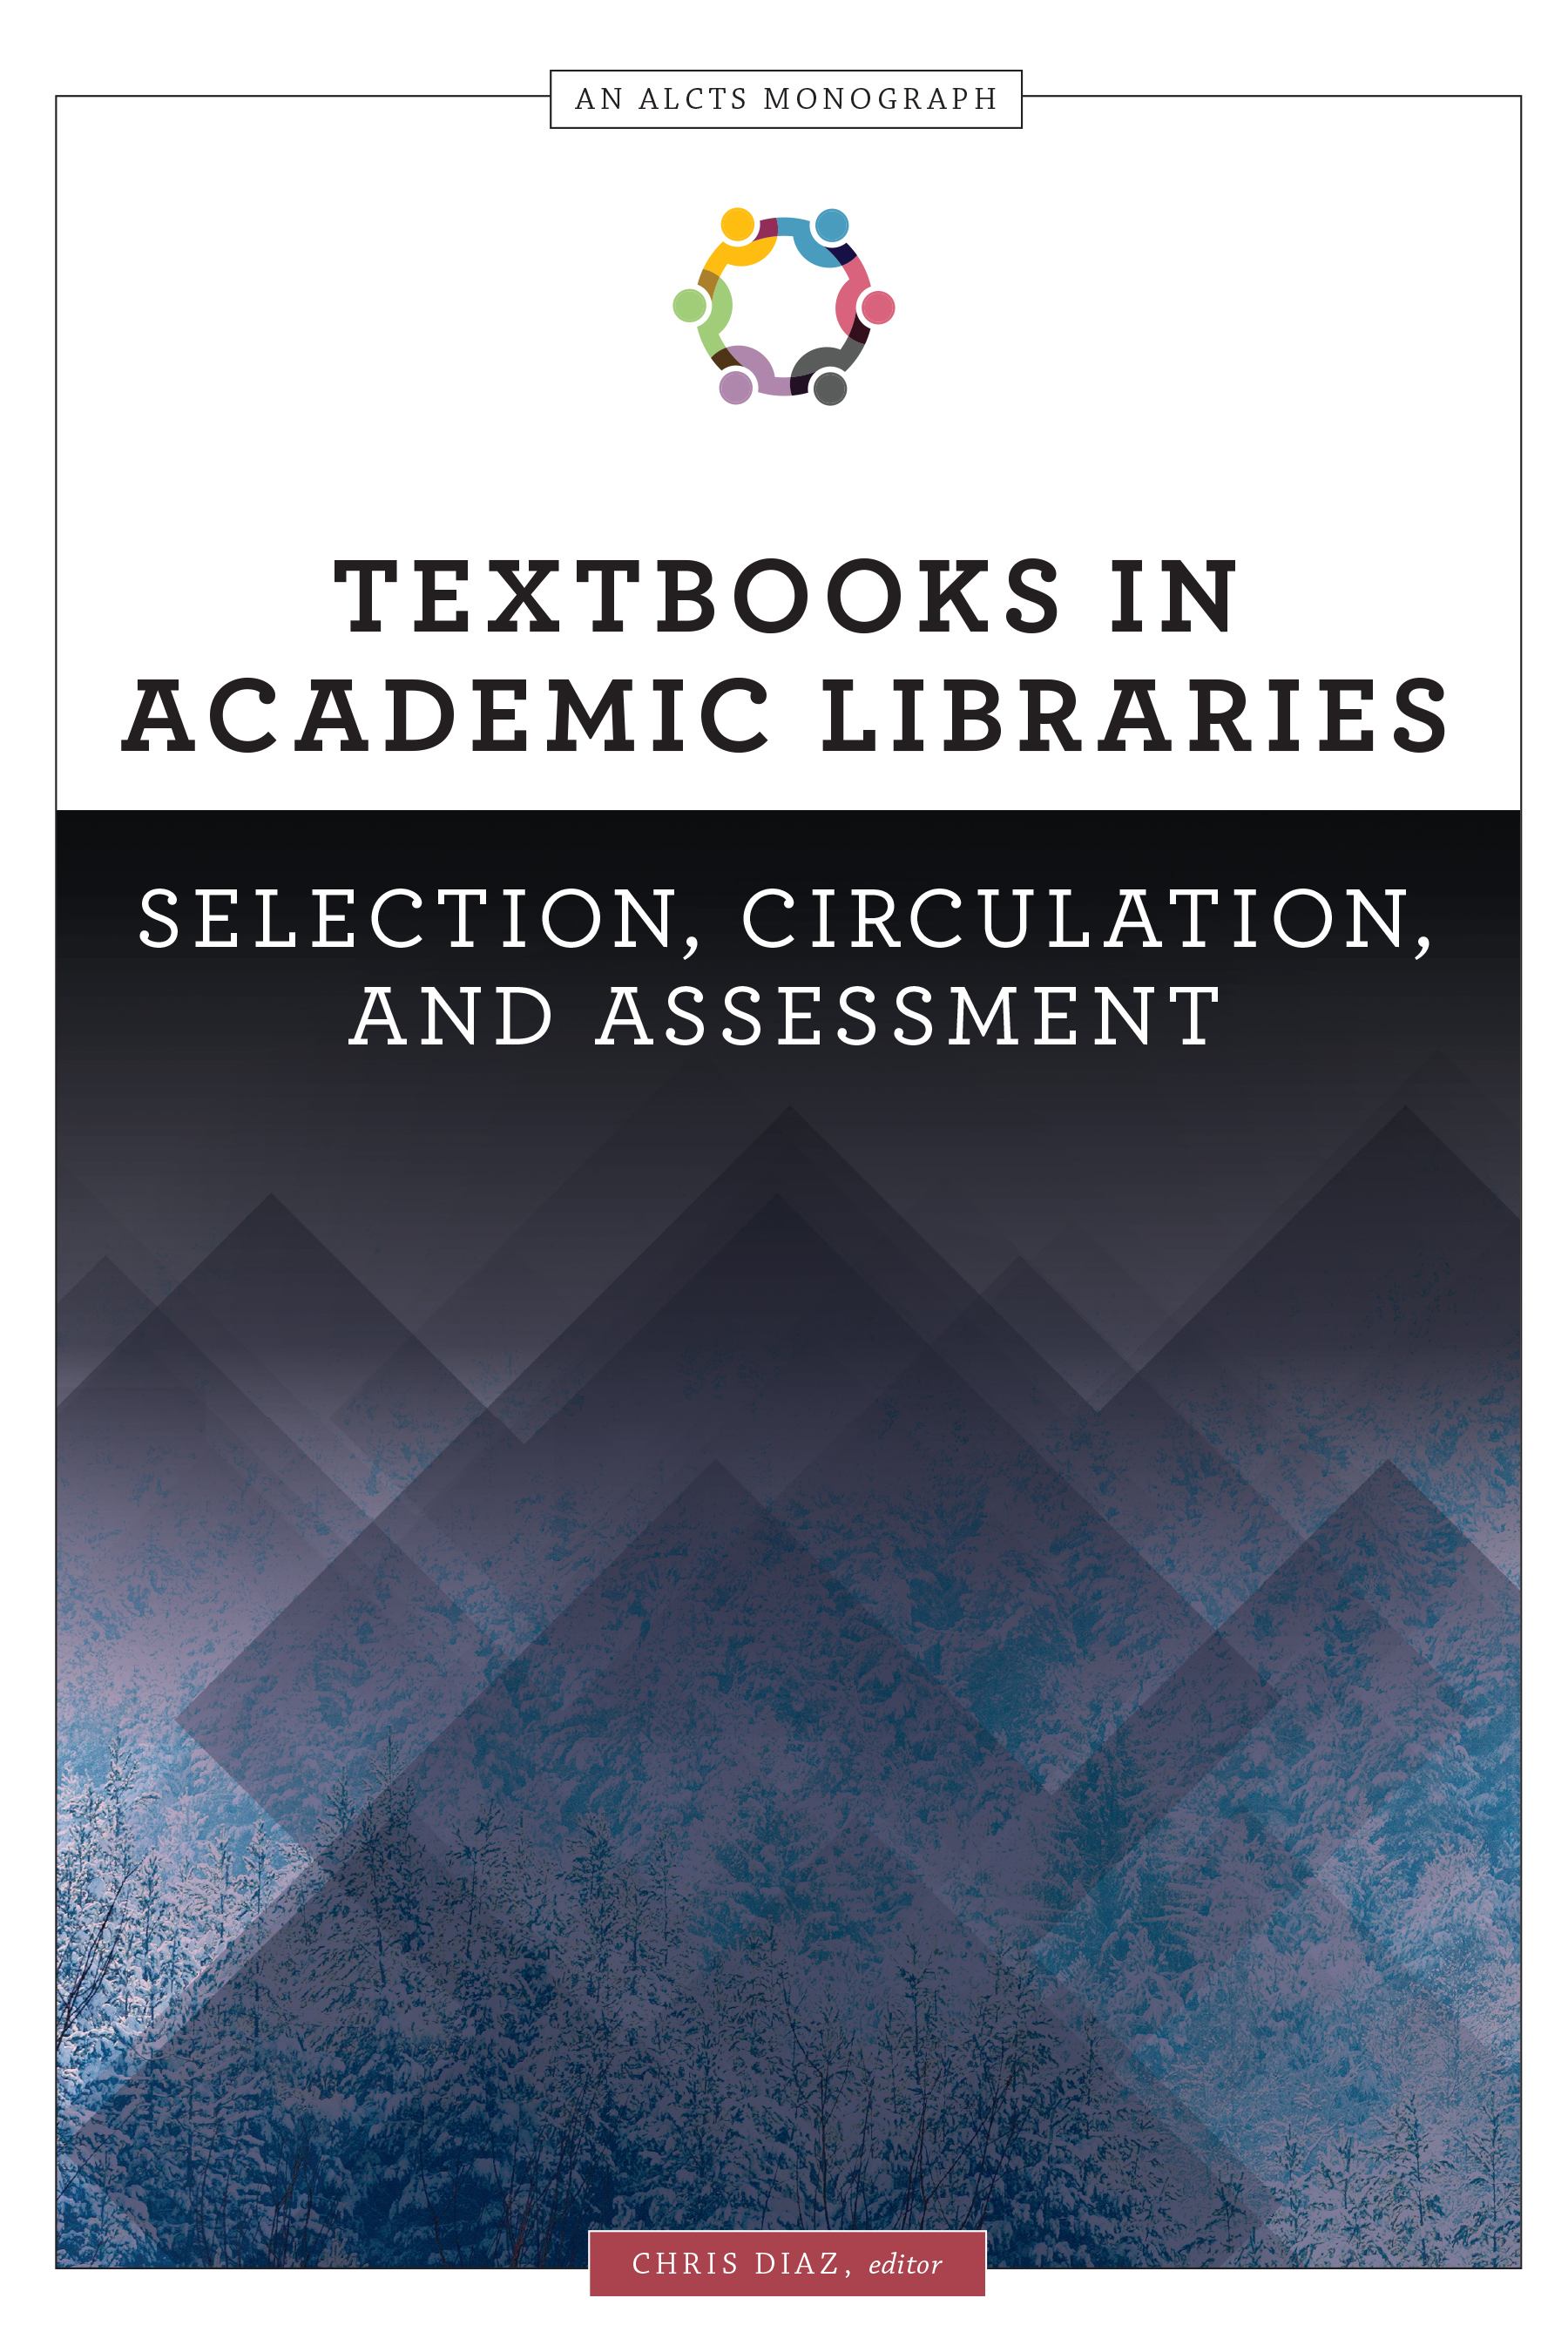 Libraries: a selection of sites